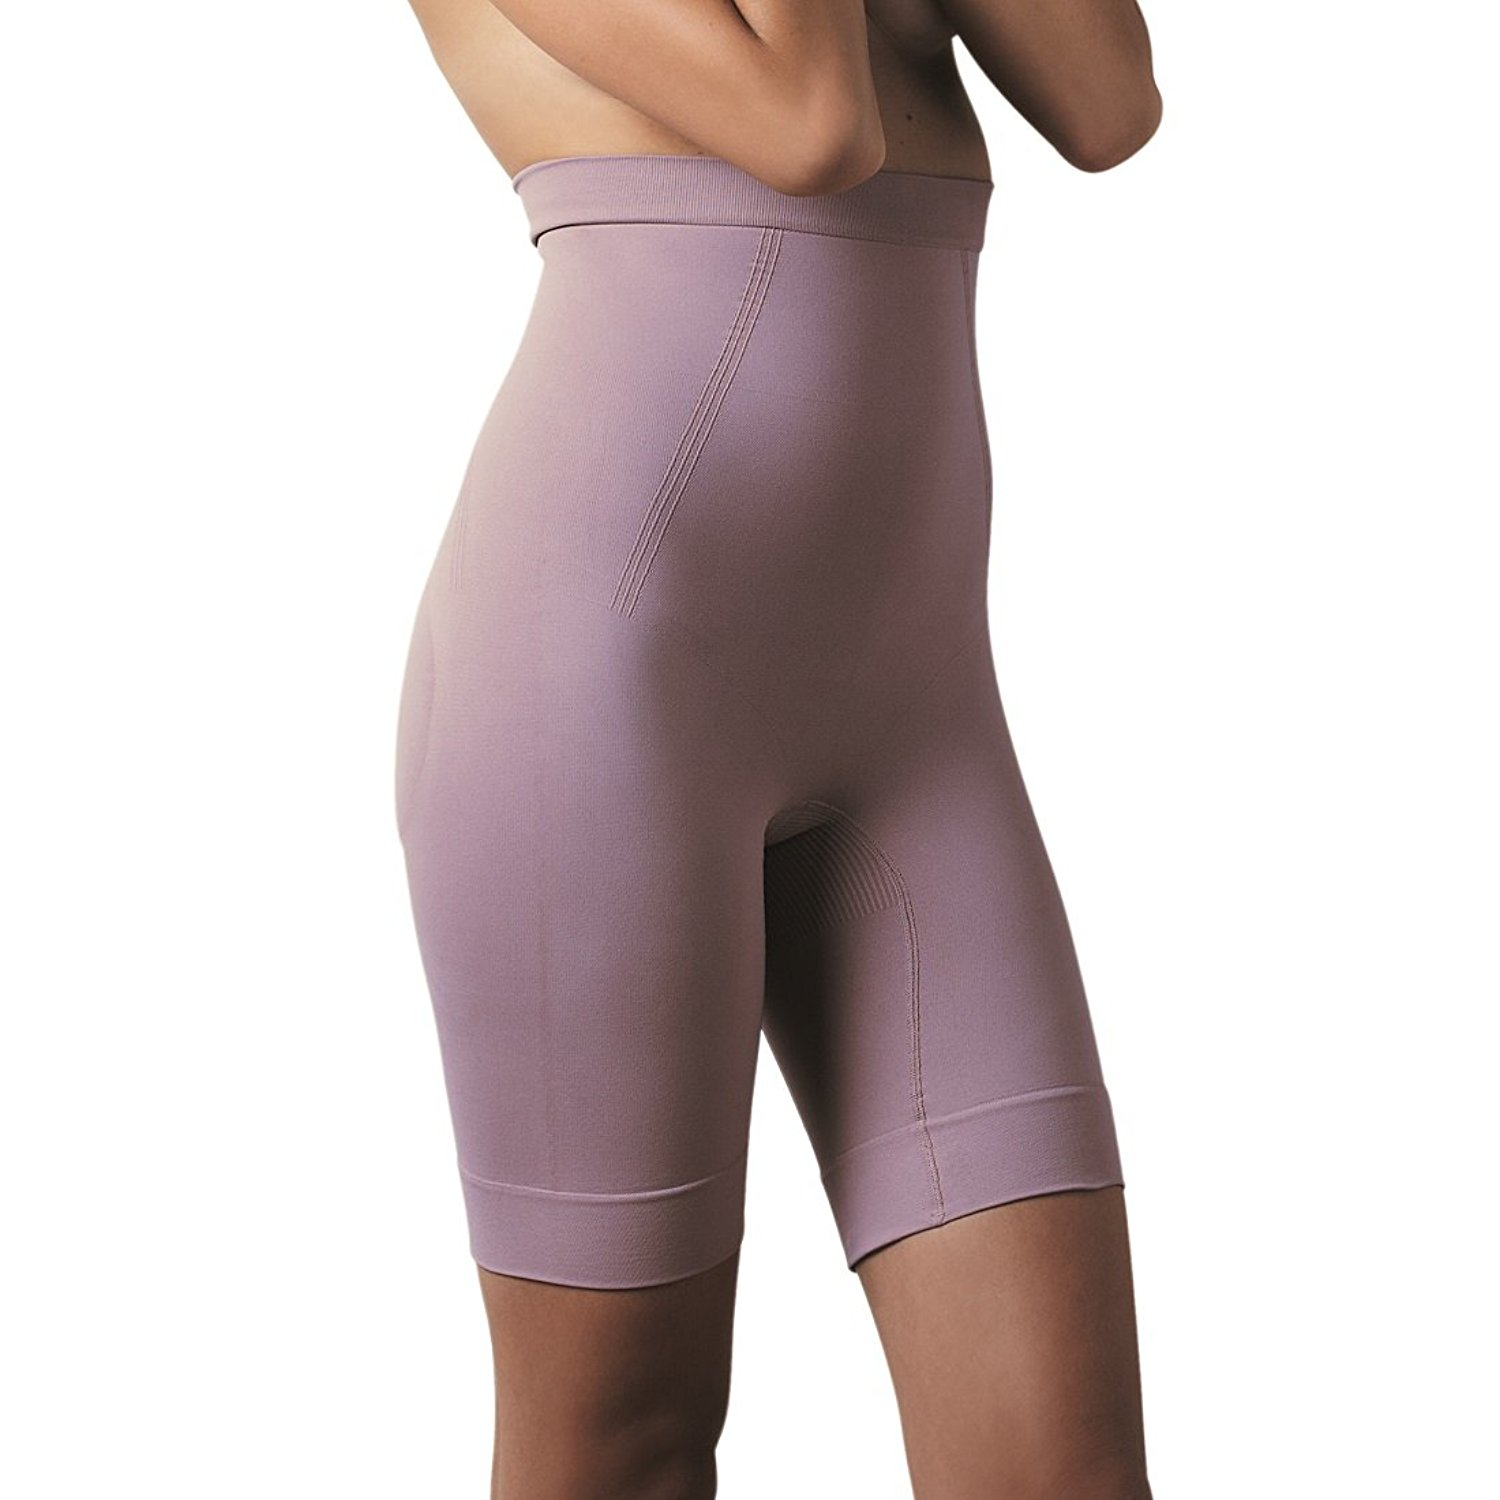 bff4520b6 Lupo Loba Women s Emana Anti Cellulite Bermuda Shorts Shapewear. null.  null. Get Quotations · Scala Women s Shapewear Anti-Cellulite High Waist  Bermuda ...